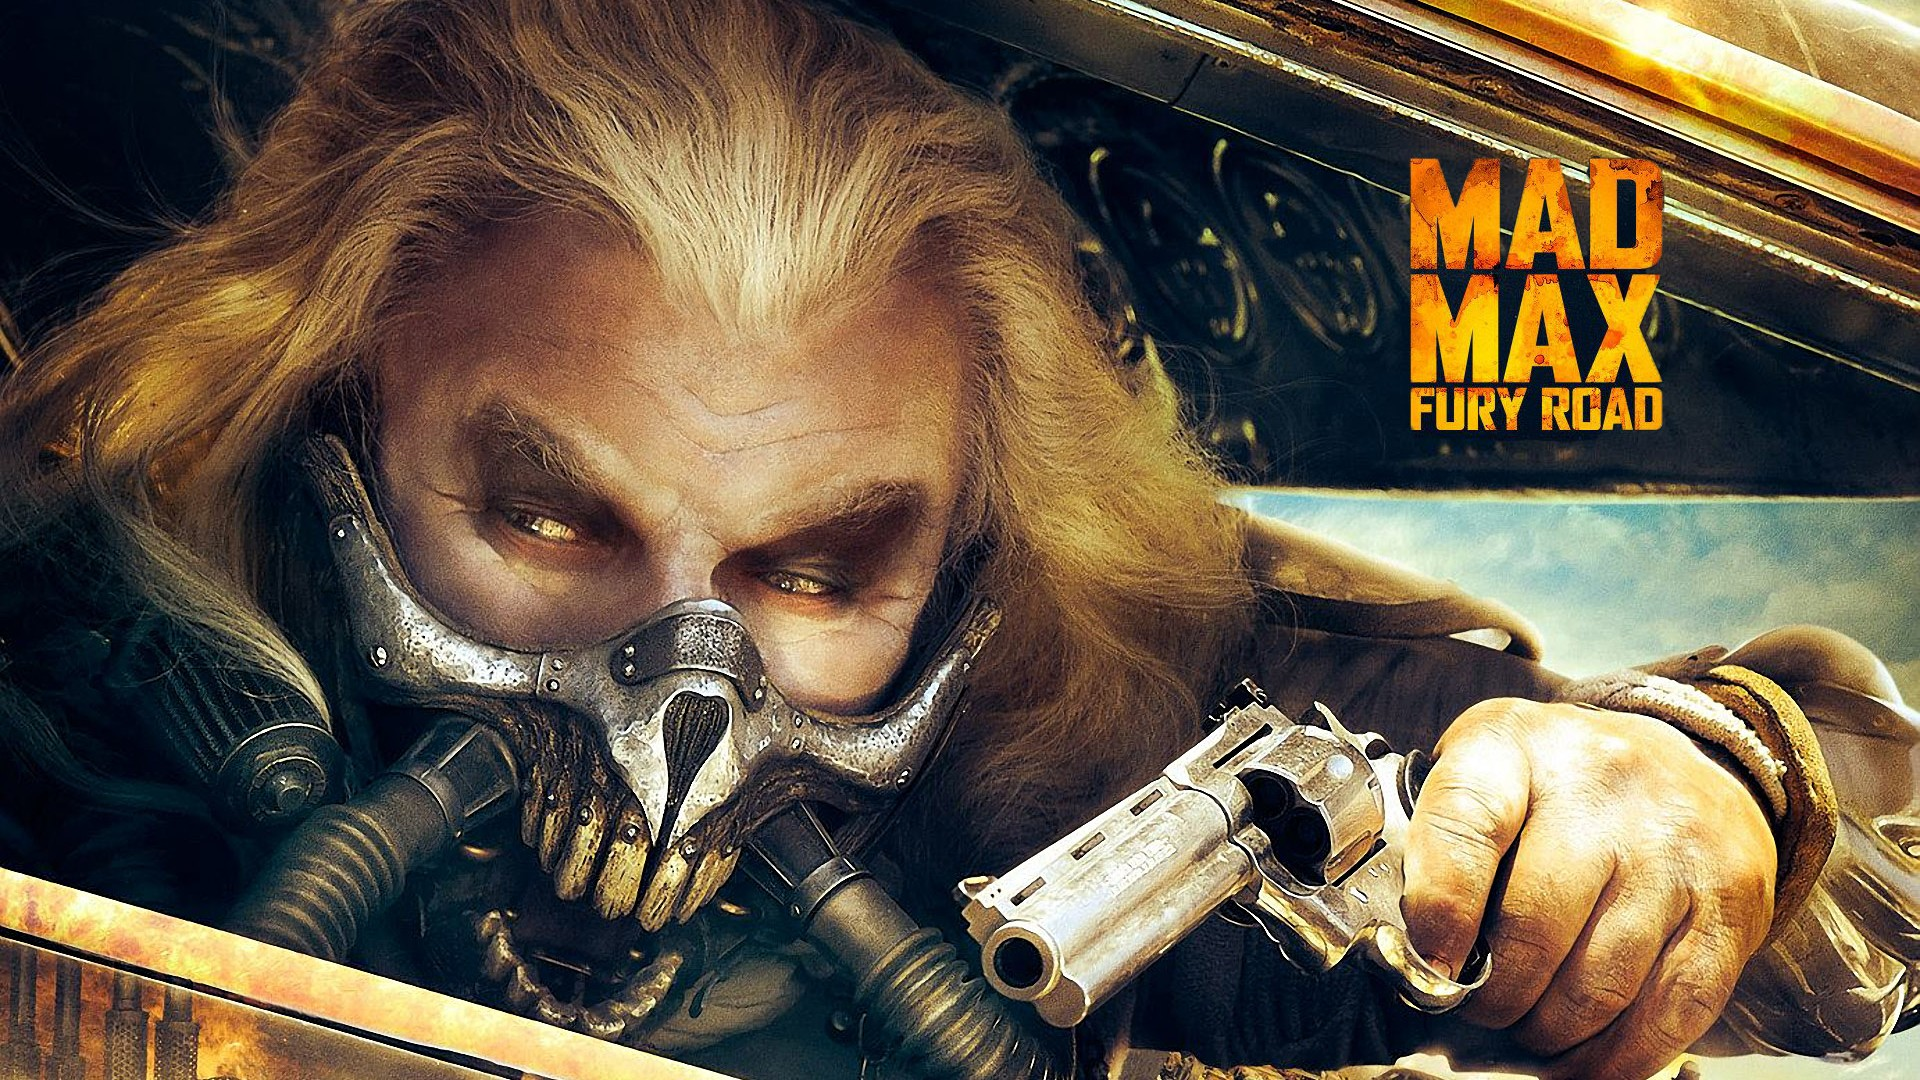 Mad max fury road movie poster wallpaper 54281 1920x1080 px mad max fury road movie poster wallpaper 54281 voltagebd